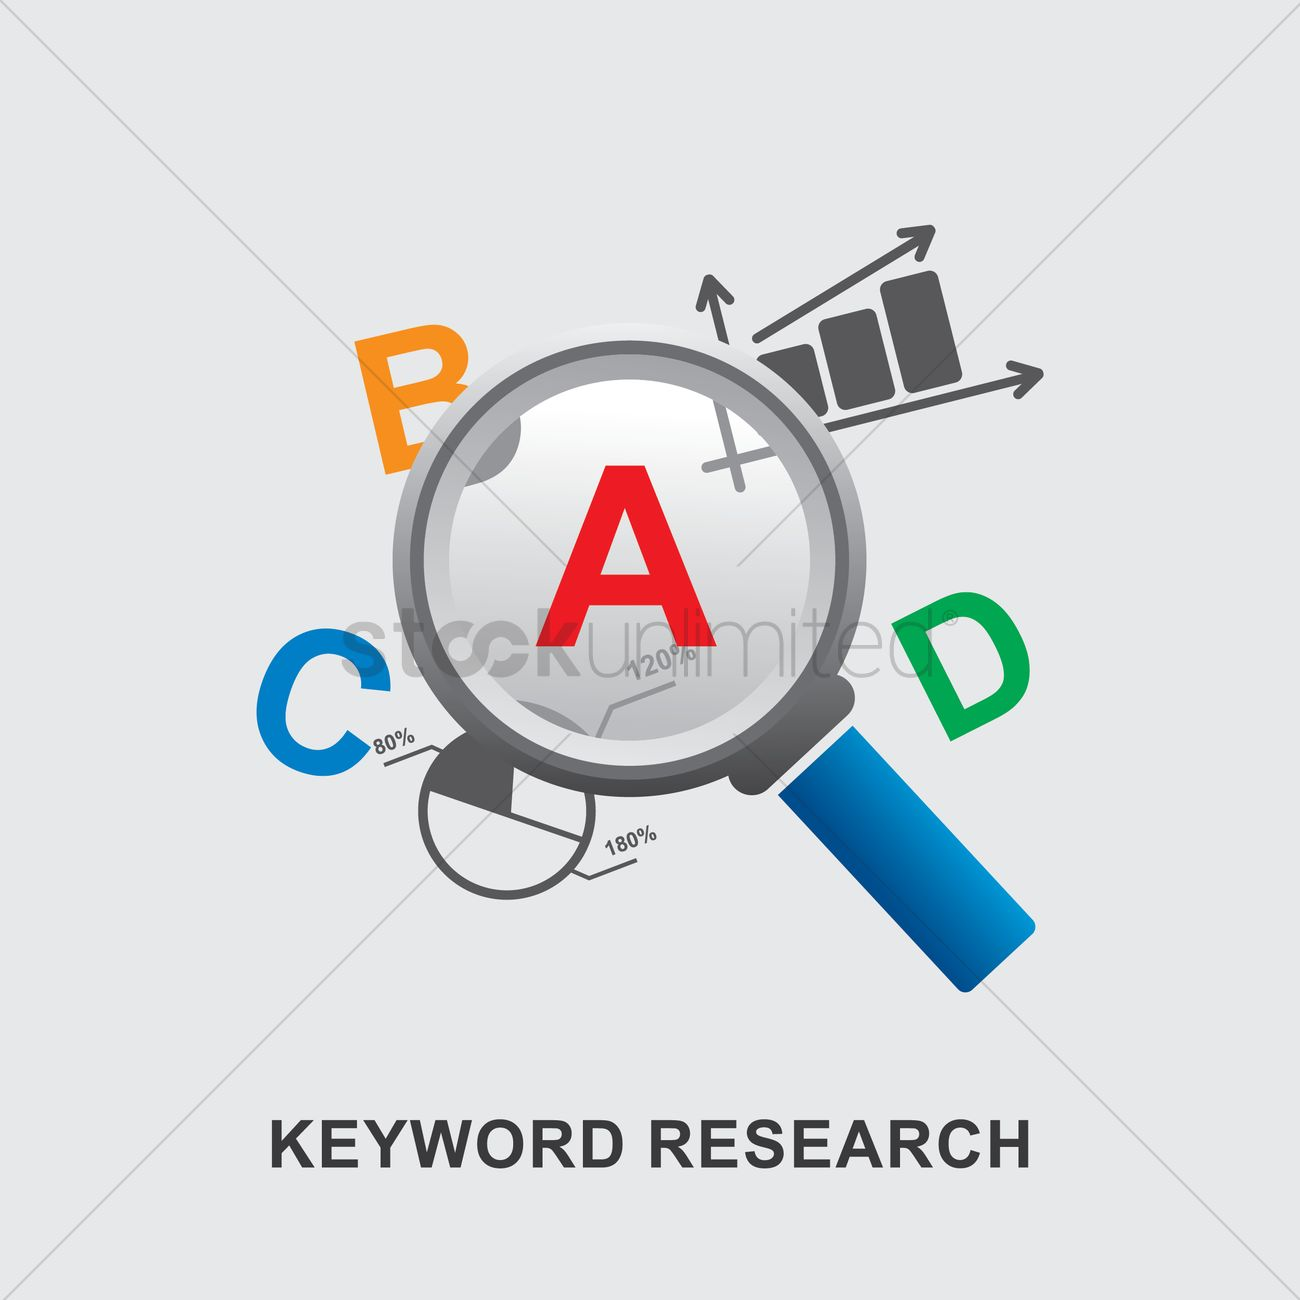 Keyword research Vector Image - 1824043 | StockUnlimited